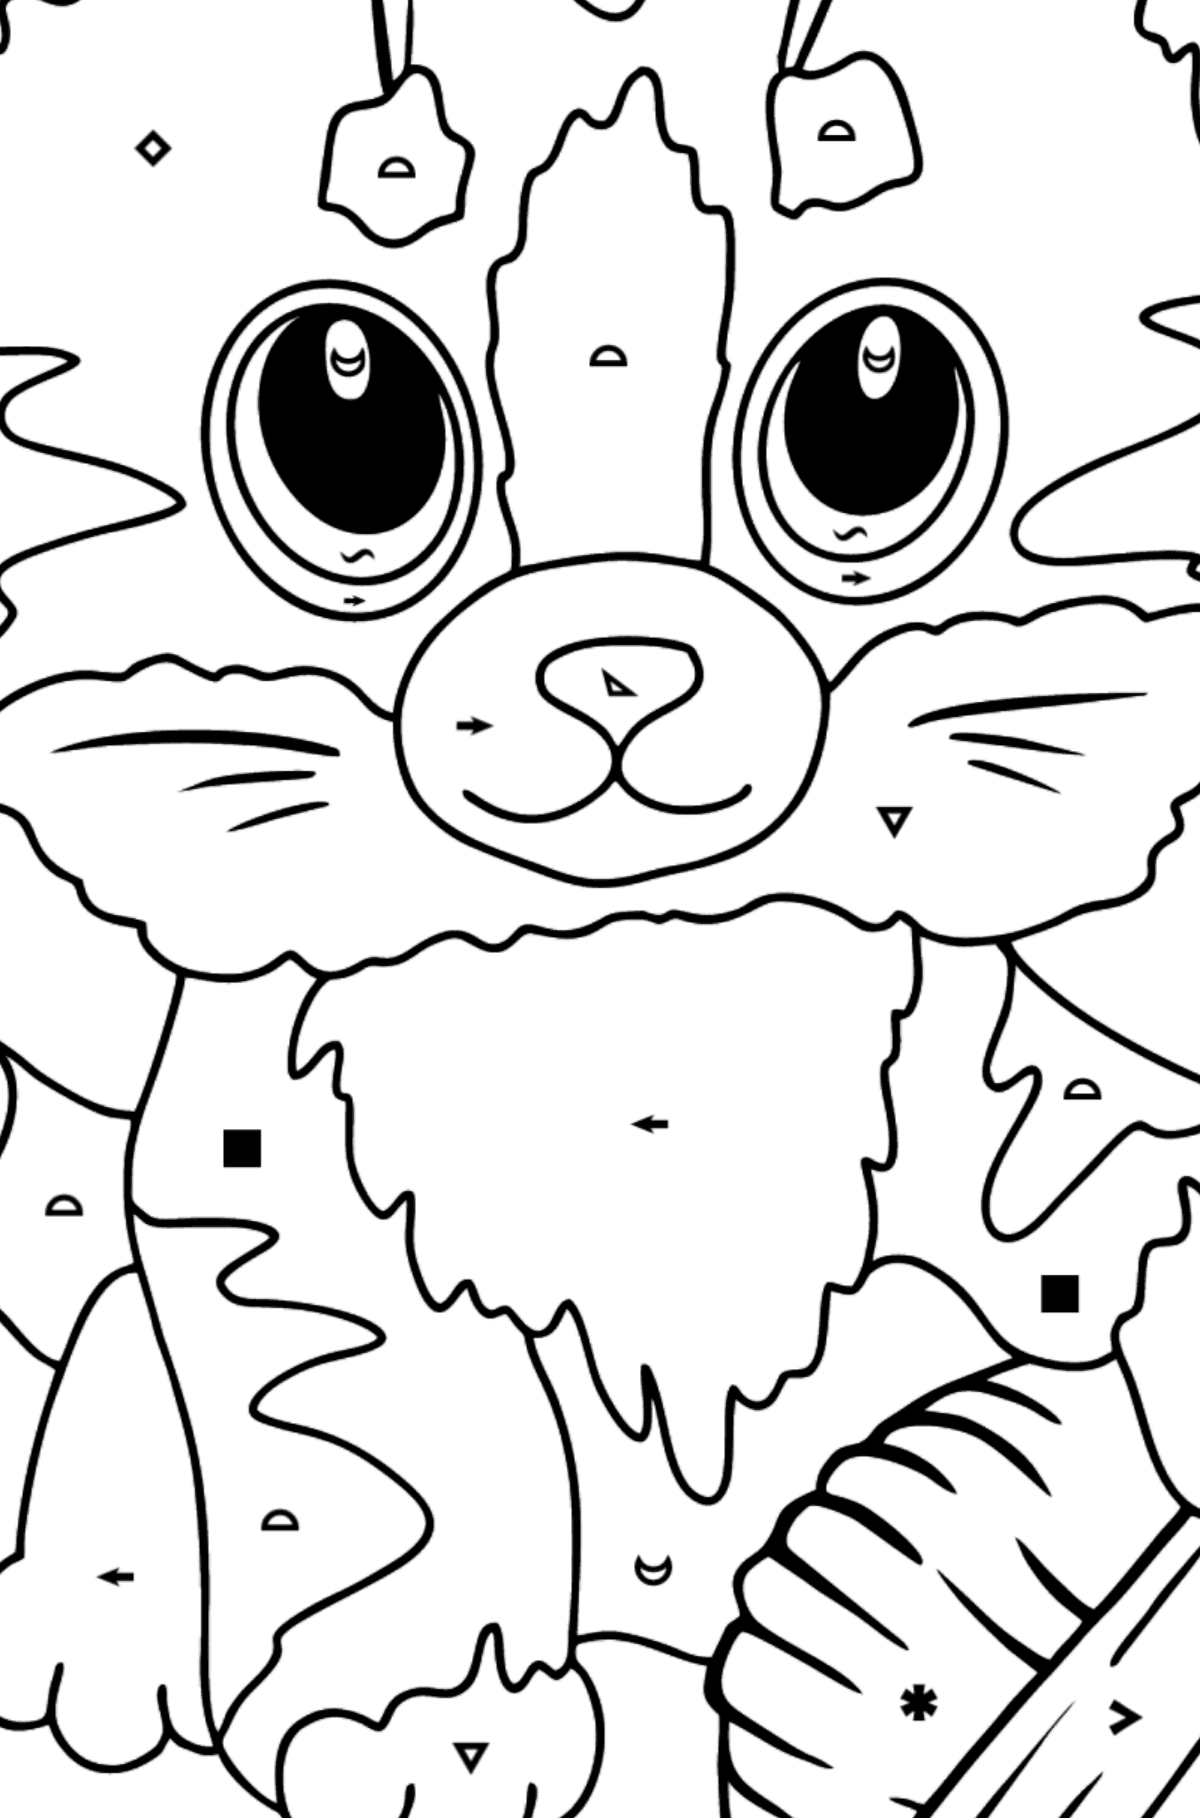 Cute Cat Coloring Page - Coloring by Symbols and Geometric Shapes for Kids